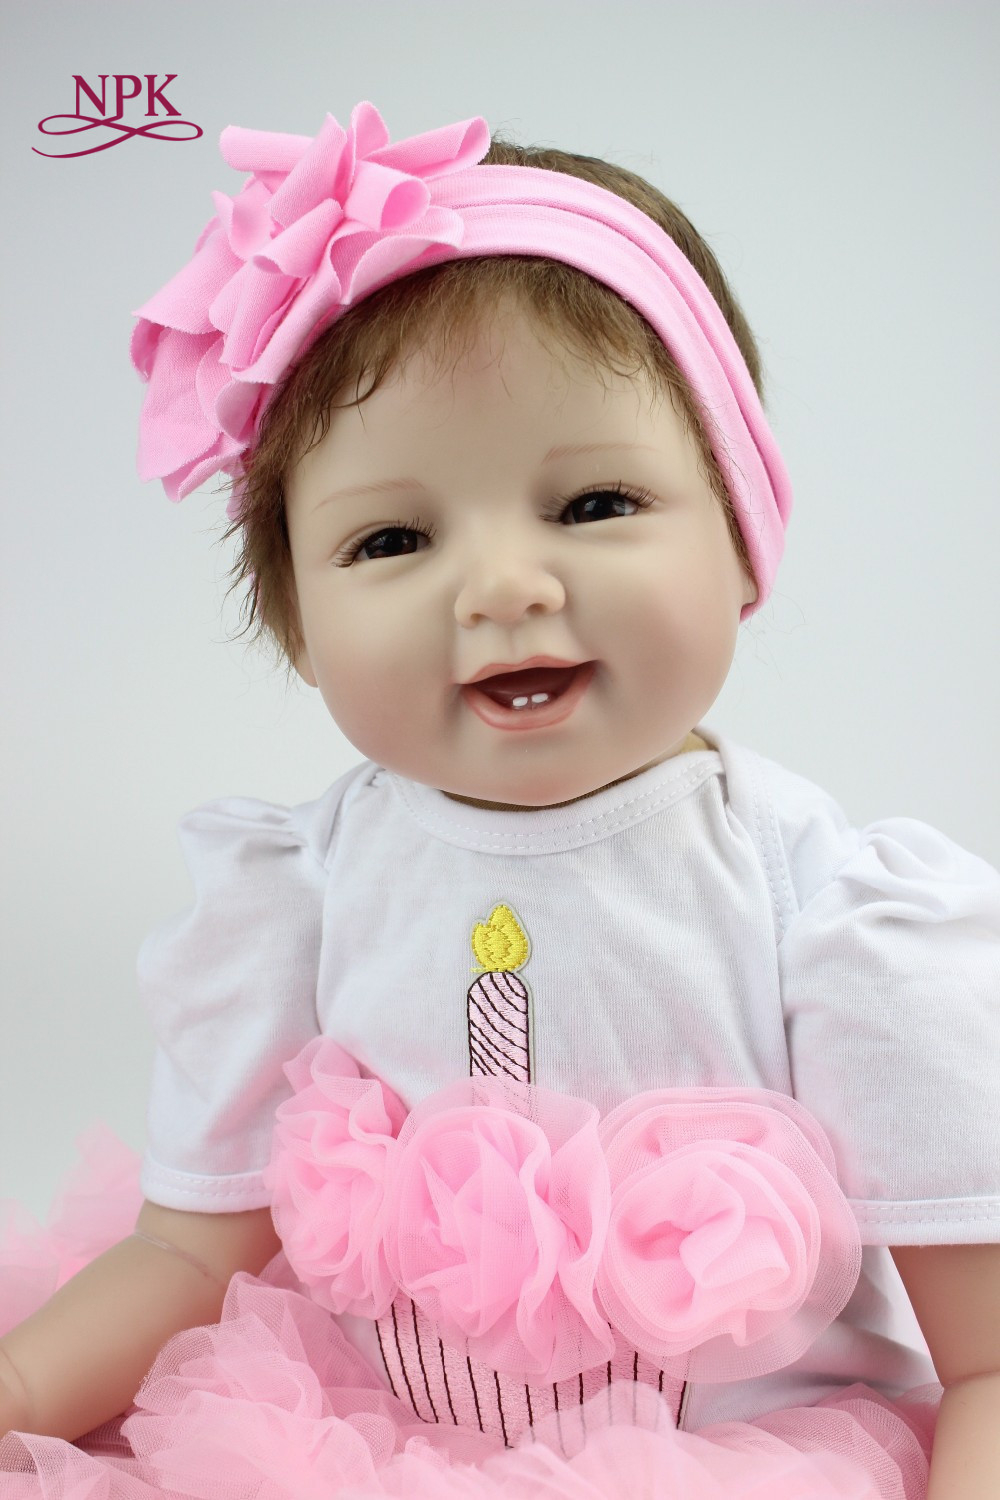 NPK 22 55cm Silicone Baby Reborn Dolls With Cotton Body Dressed in Nice Sweater Lifelike Doll